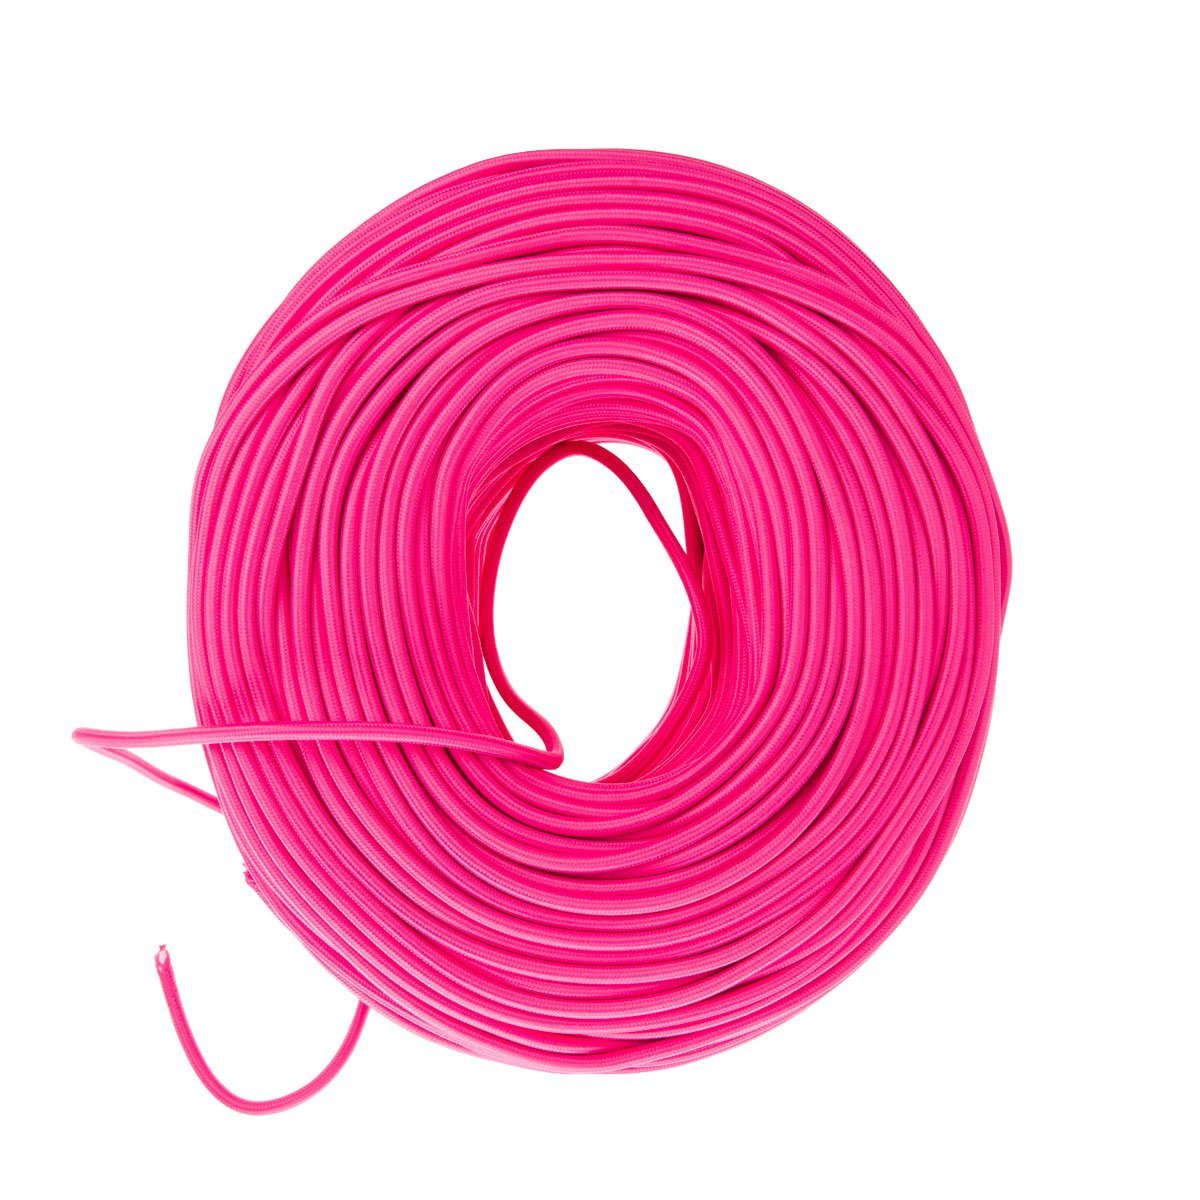 Strange Cloth Covered Wire Hot Pink Color Cord Company Wiring Cloud Ratagdienstapotheekhoekschewaardnl